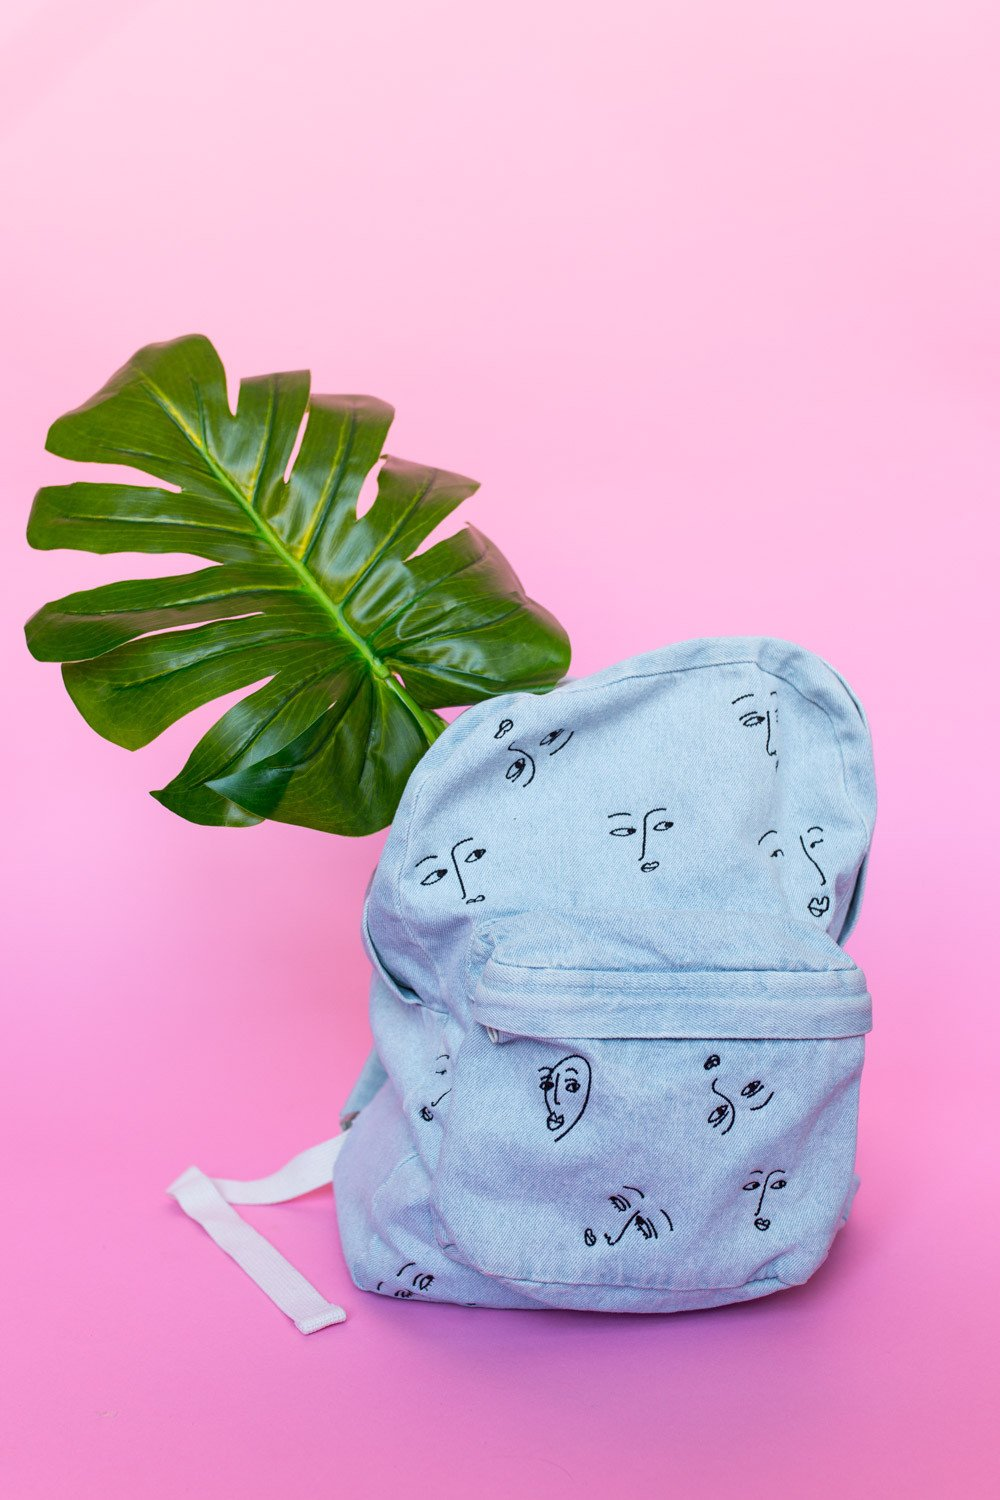 The Style Club - Faces of Love Denim Backpack by CLUB STYLE (Image #2)